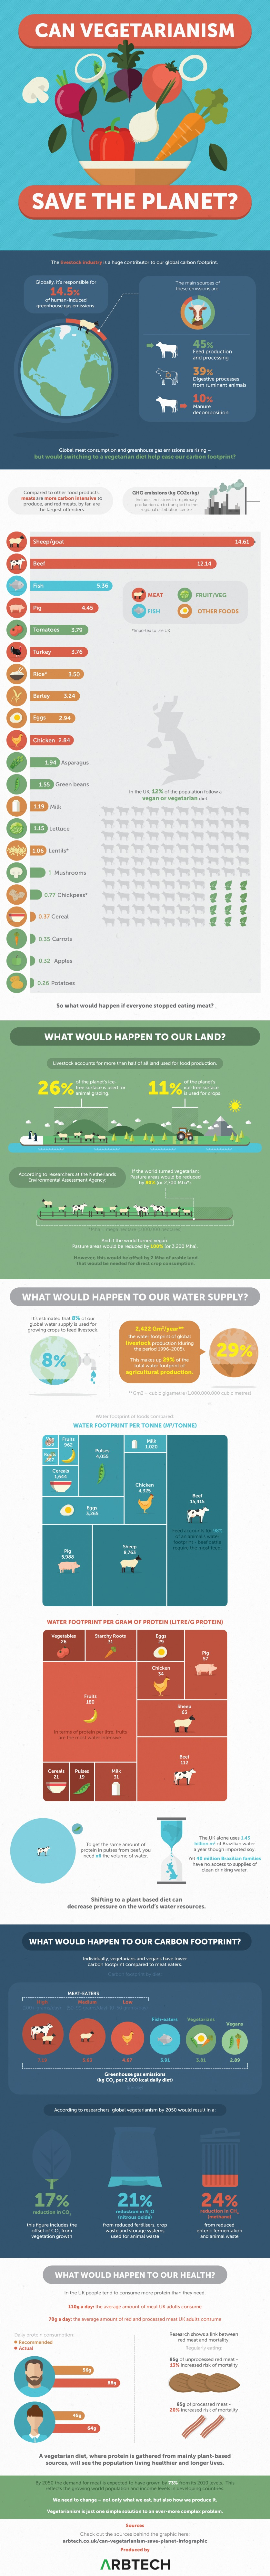 Is Vegetarianism Really The Solution For Carbon Footprint? - Infographic